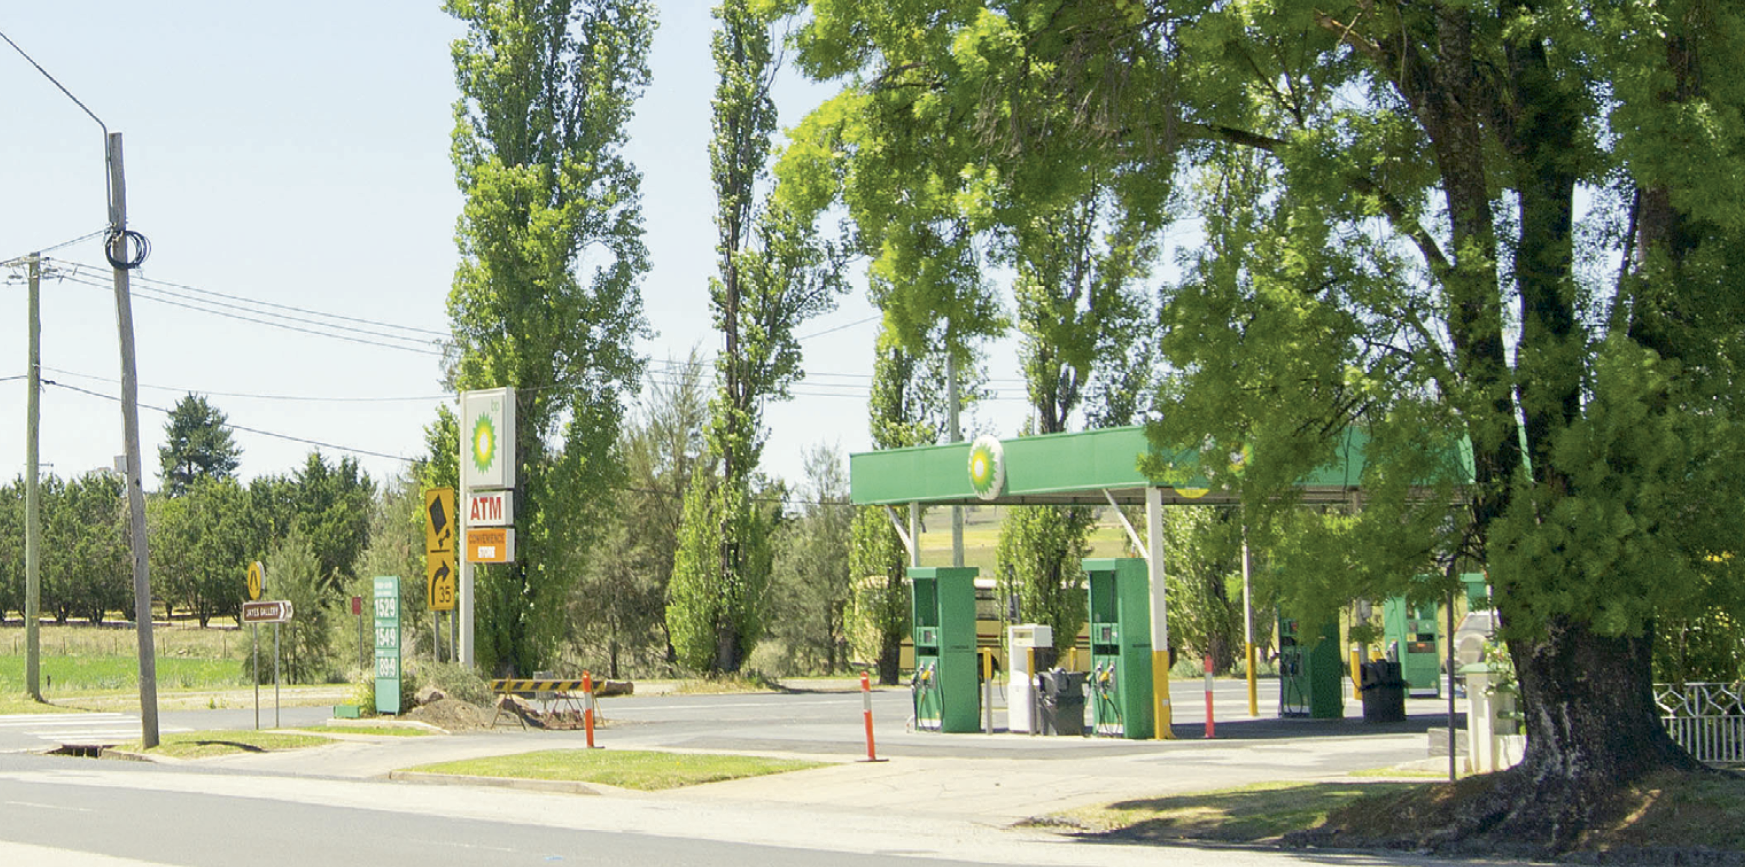 A BP petrol station surrounded by grassed areas and tall trees.